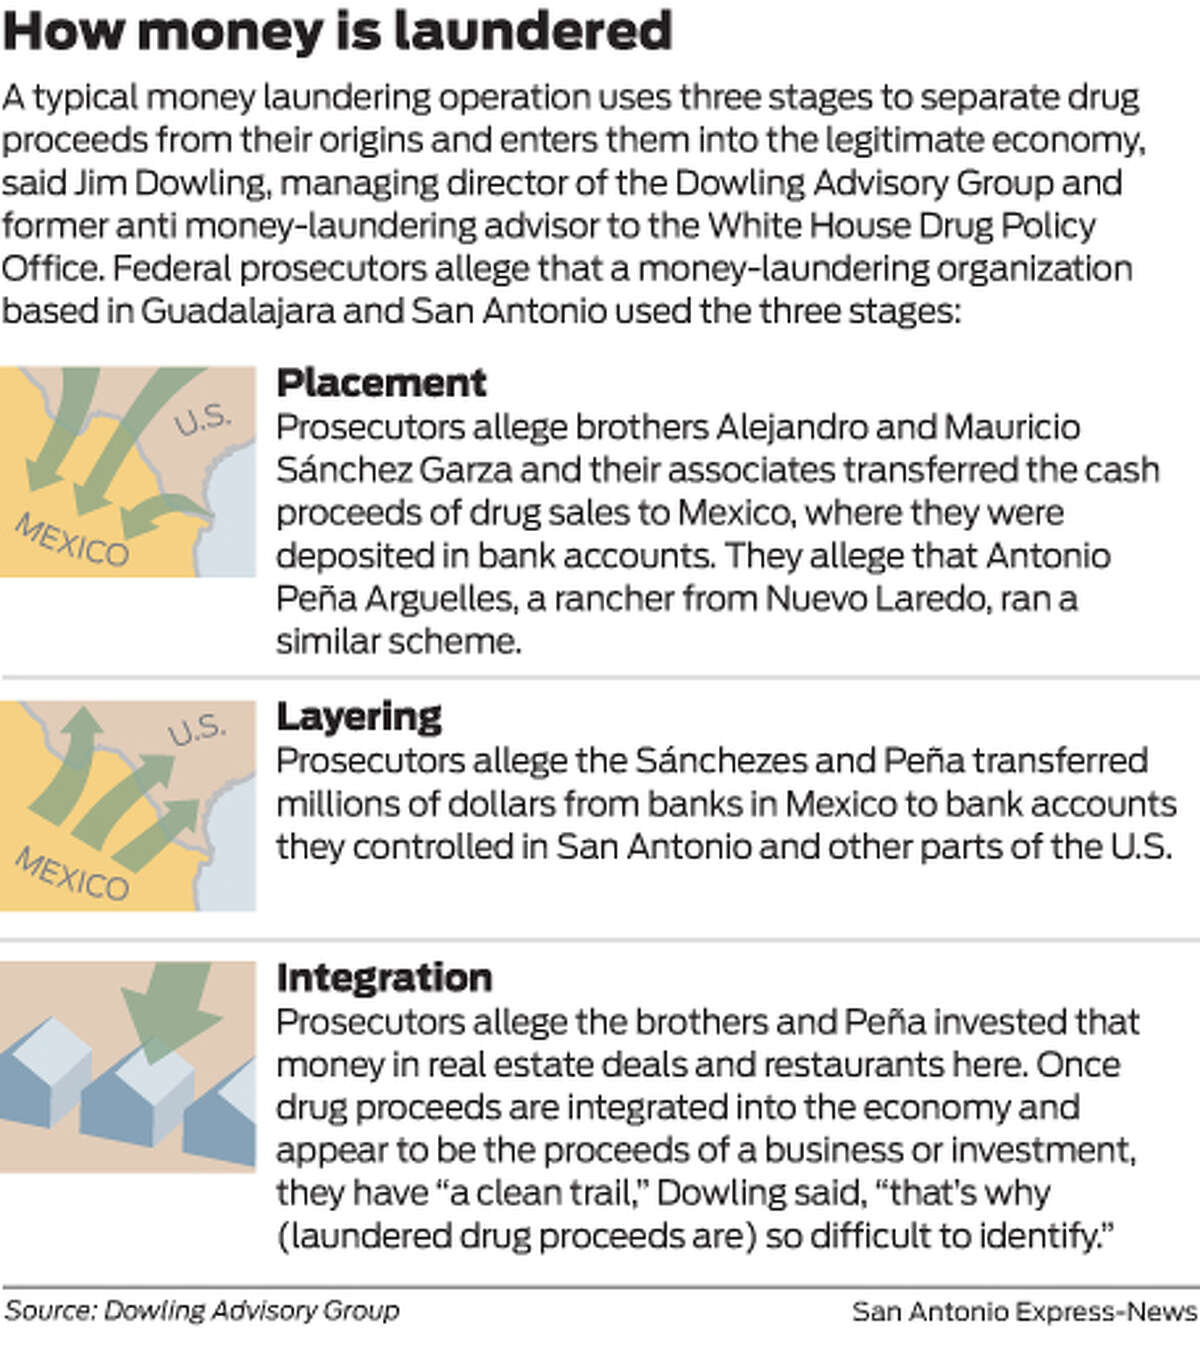 A typical money laundering operation uses three stages to separate drug proceeds from their origins and enters them into the legitimate economy, said Jim Dowling, managing director of the Dowling Advisory Group and former anti money-laundering advisor to the White House Drug Policy Office. Federal prosecutors allege that a money-laundering organization based in Guadalajara and San Antonio used the three stages.